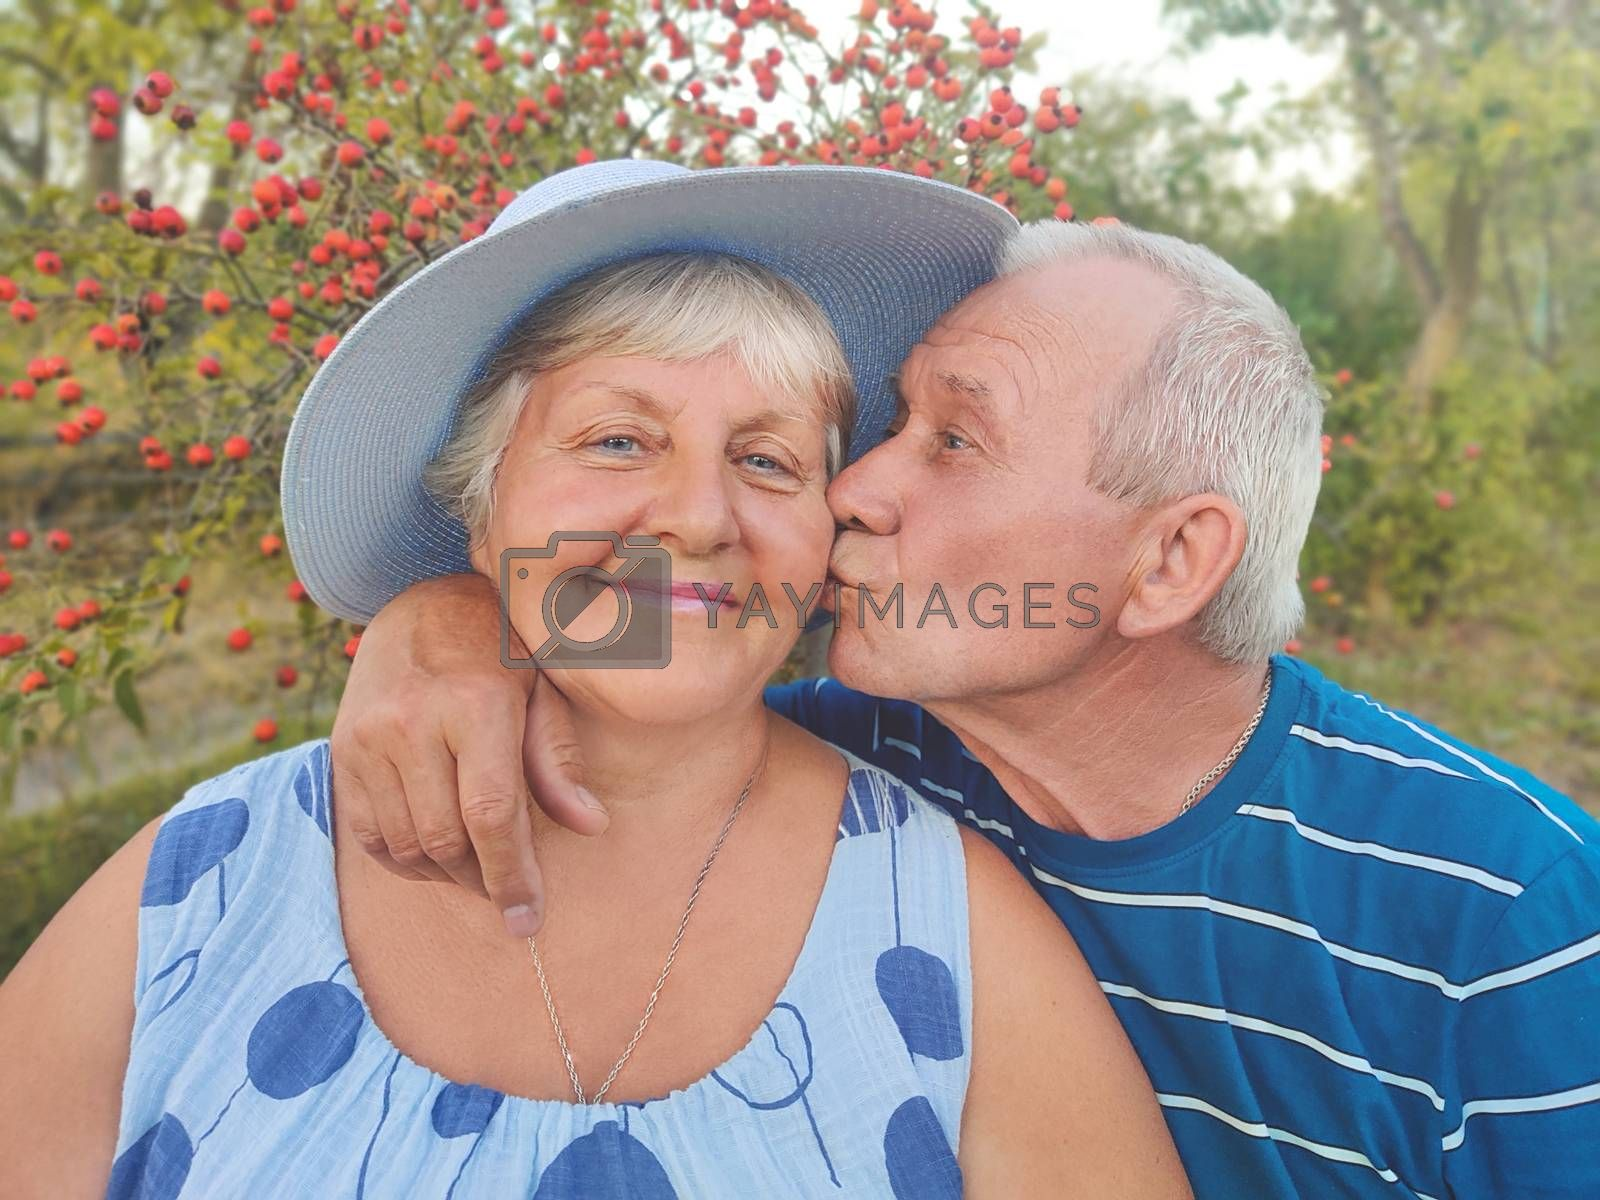 Authentic outdoor shot of aging couple having fun in the garden and blessed with love. During their game man is trying to kiss his partner and she is laughing out loud. Love concept.